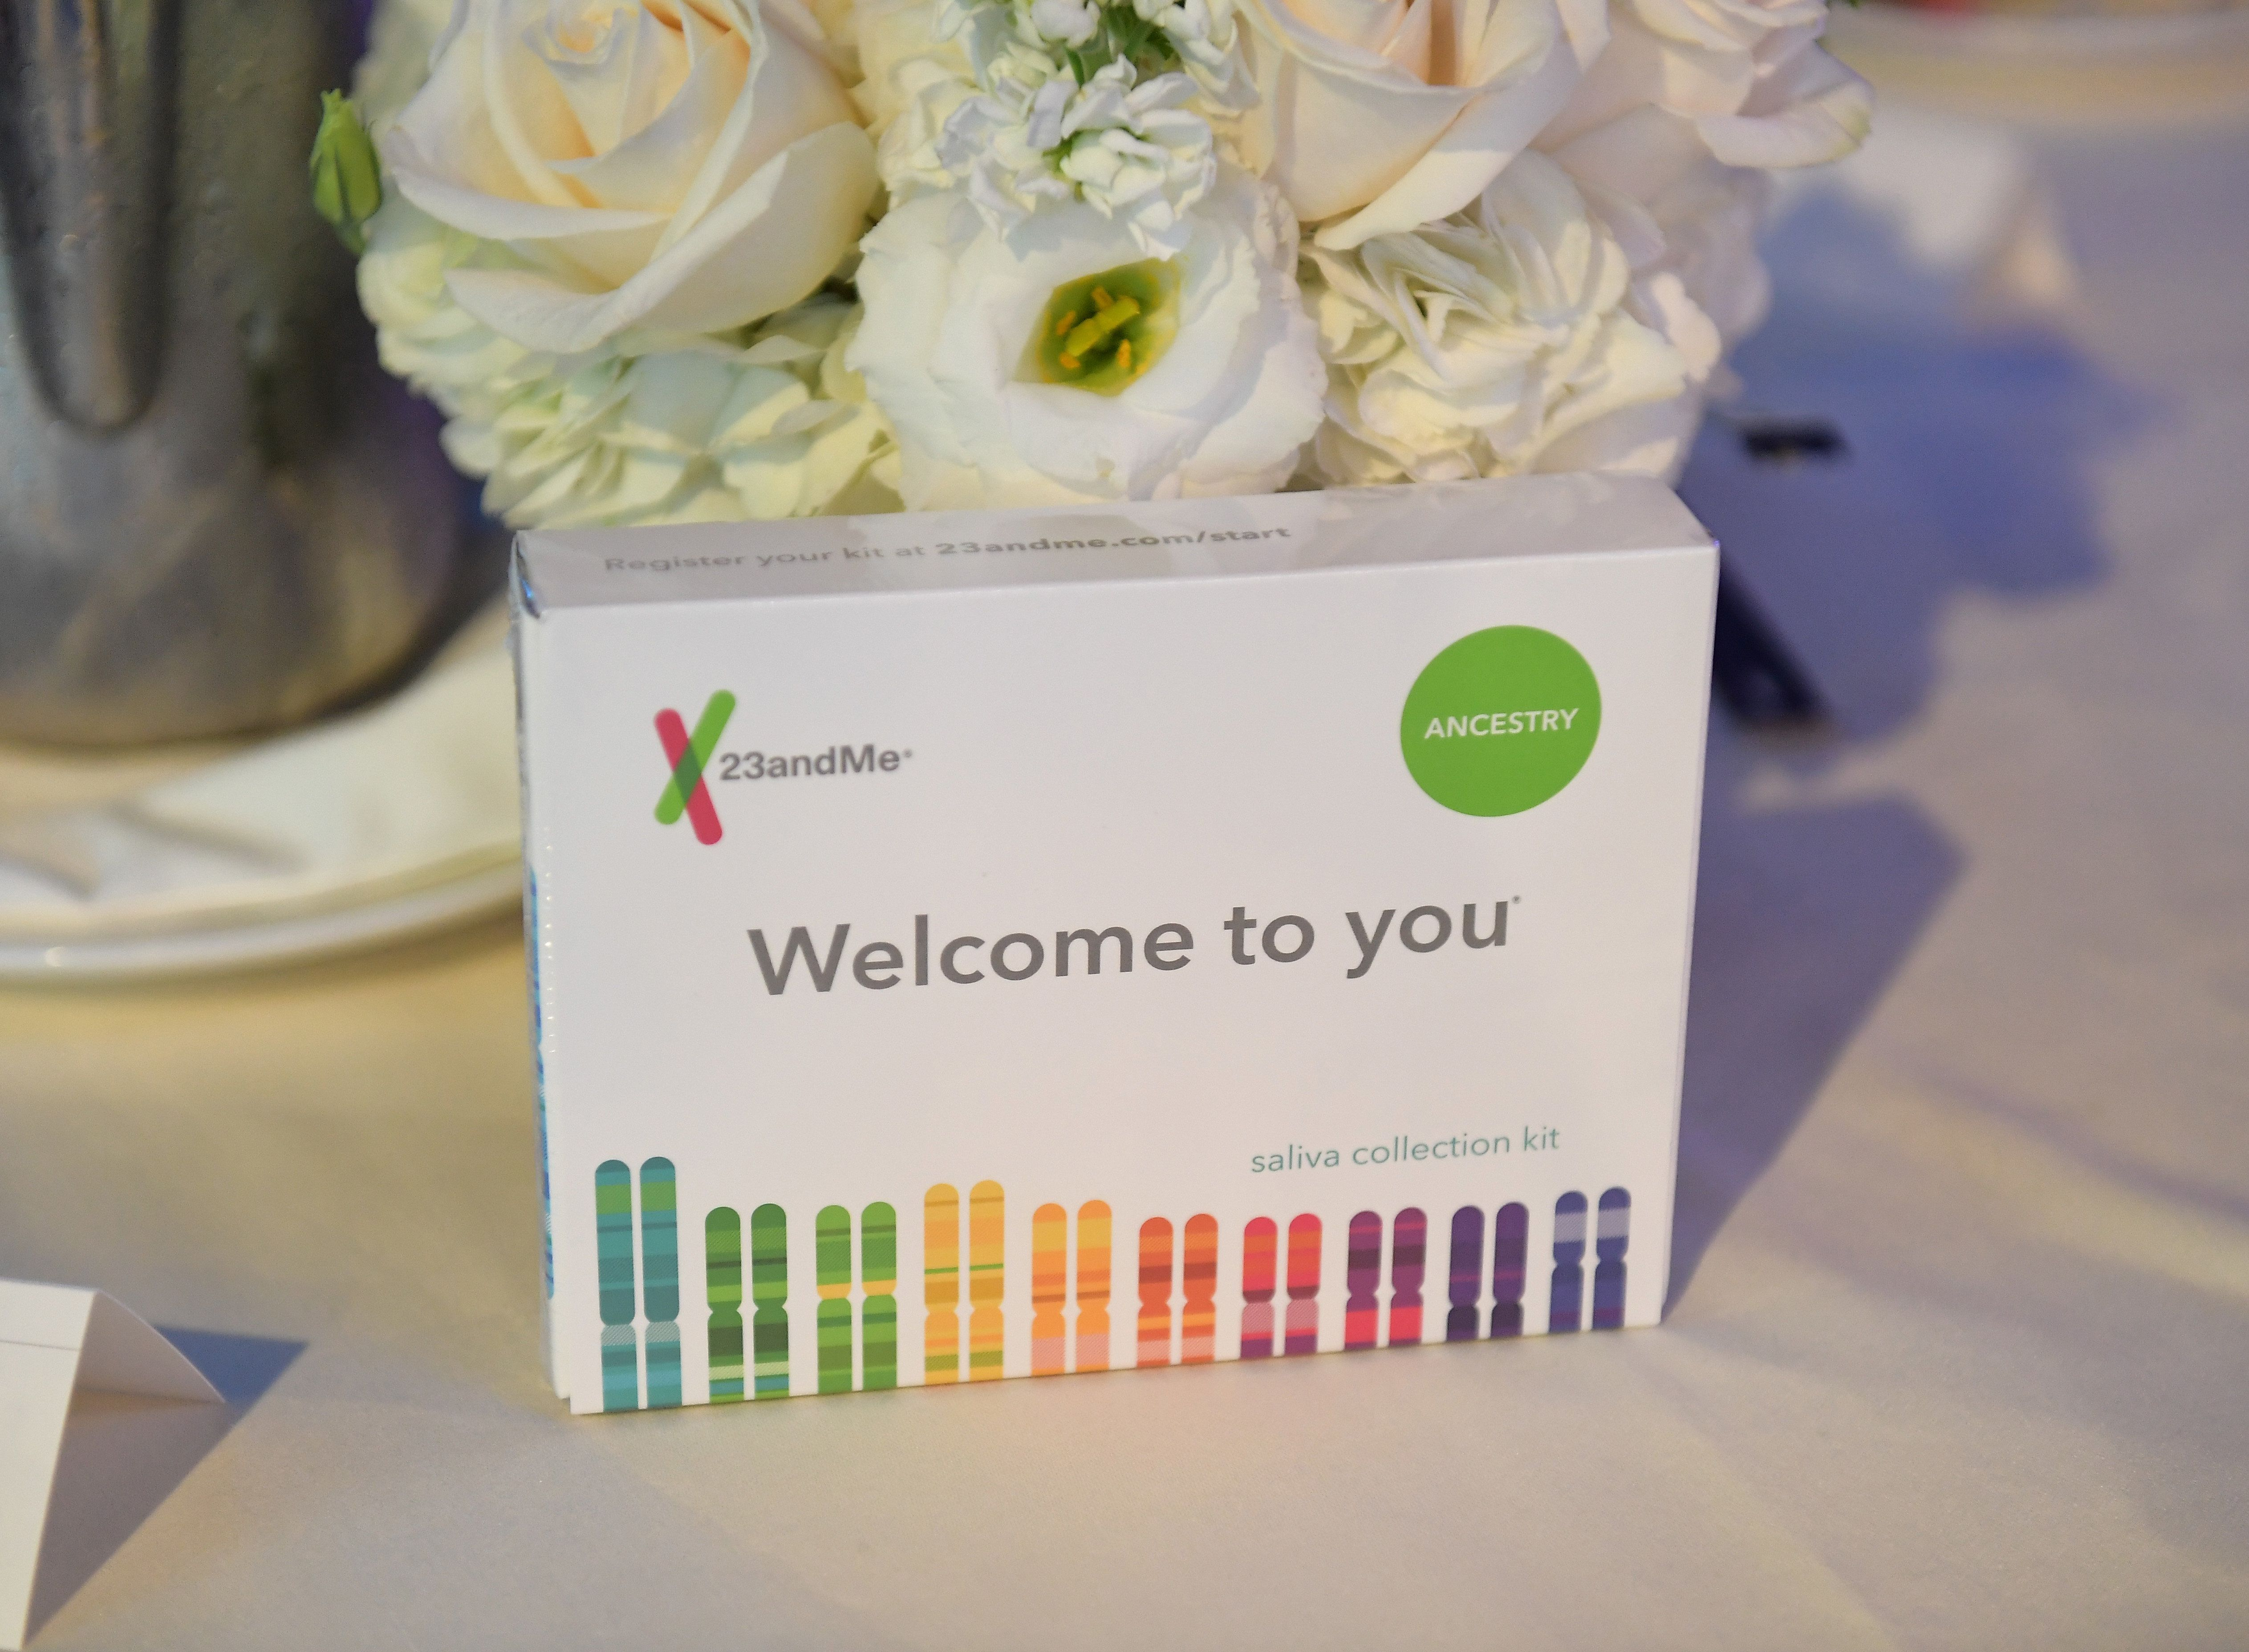 BEVERLY HILLS, CA - SEPTEMBER 26:  23andMe kits at the 2017 Streamy Awards at The Beverly Hilton Hotel on September 26, 2017 in Beverly Hills, California.  (Photo by Matt Winkelmeyer/Getty Images for dick clark productions)